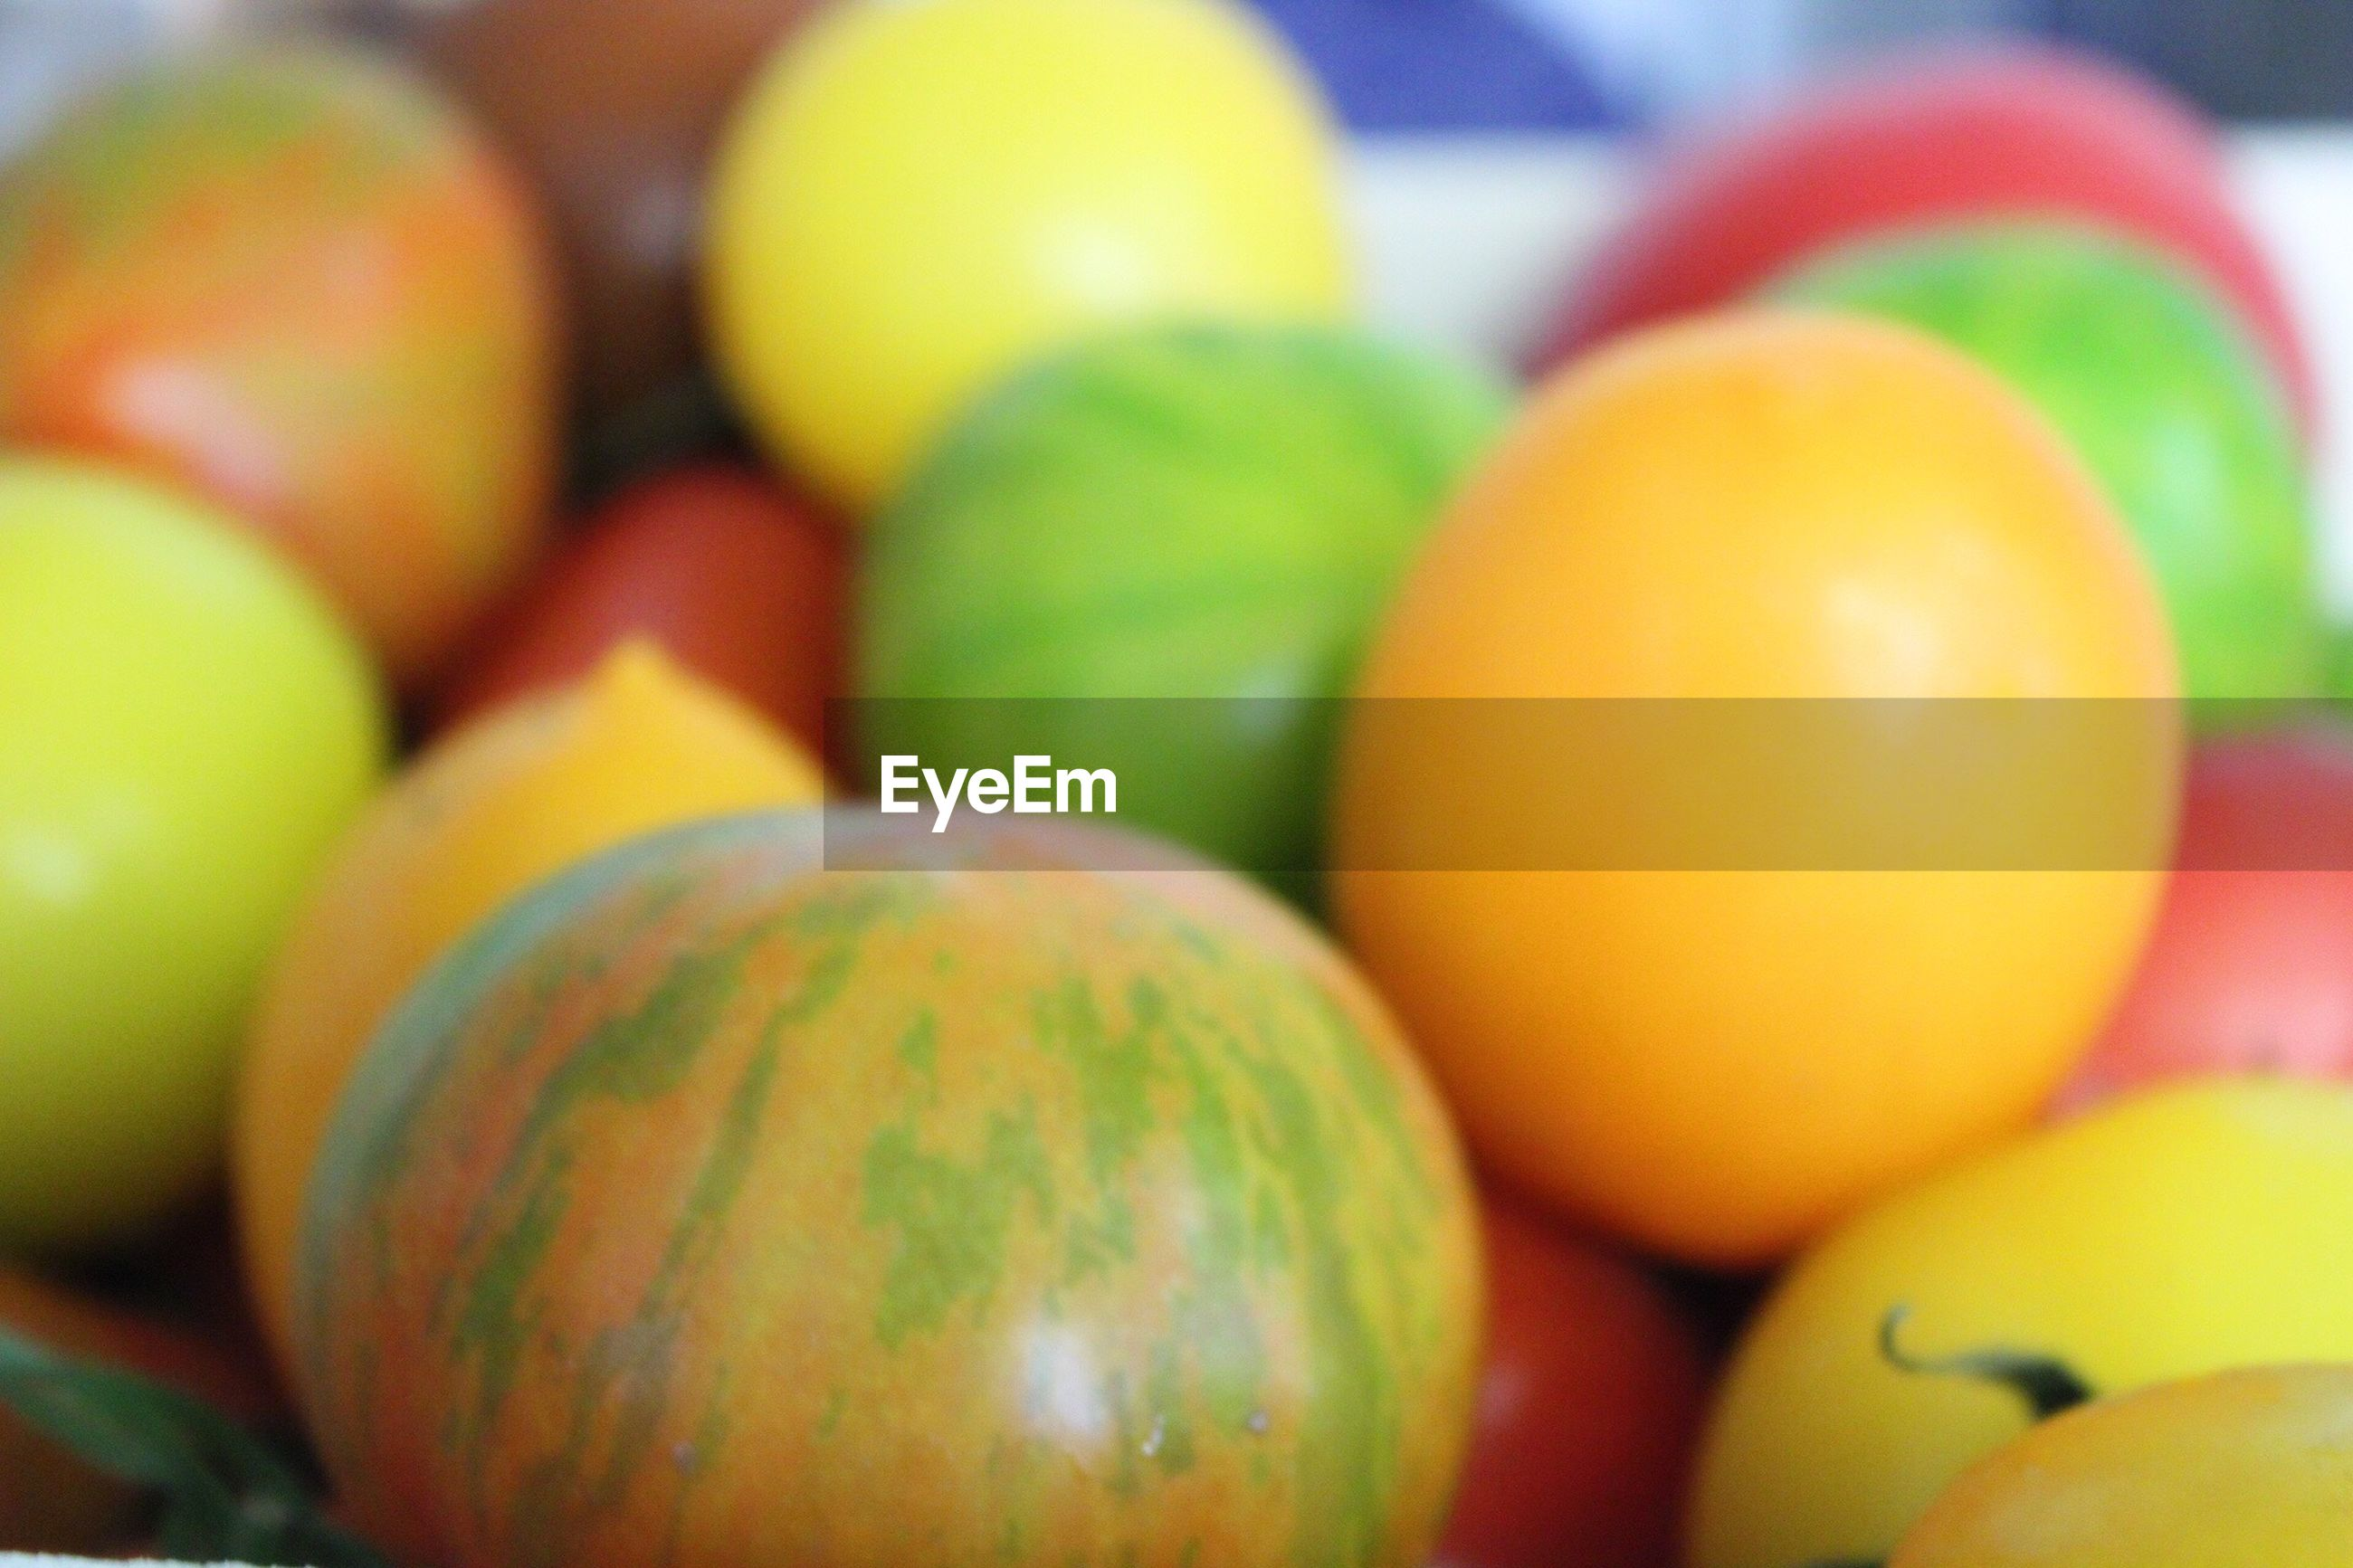 food, still life, food and drink, multi colored, close-up, egg, indoors, no people, fruit, healthy eating, easter, day, freshness